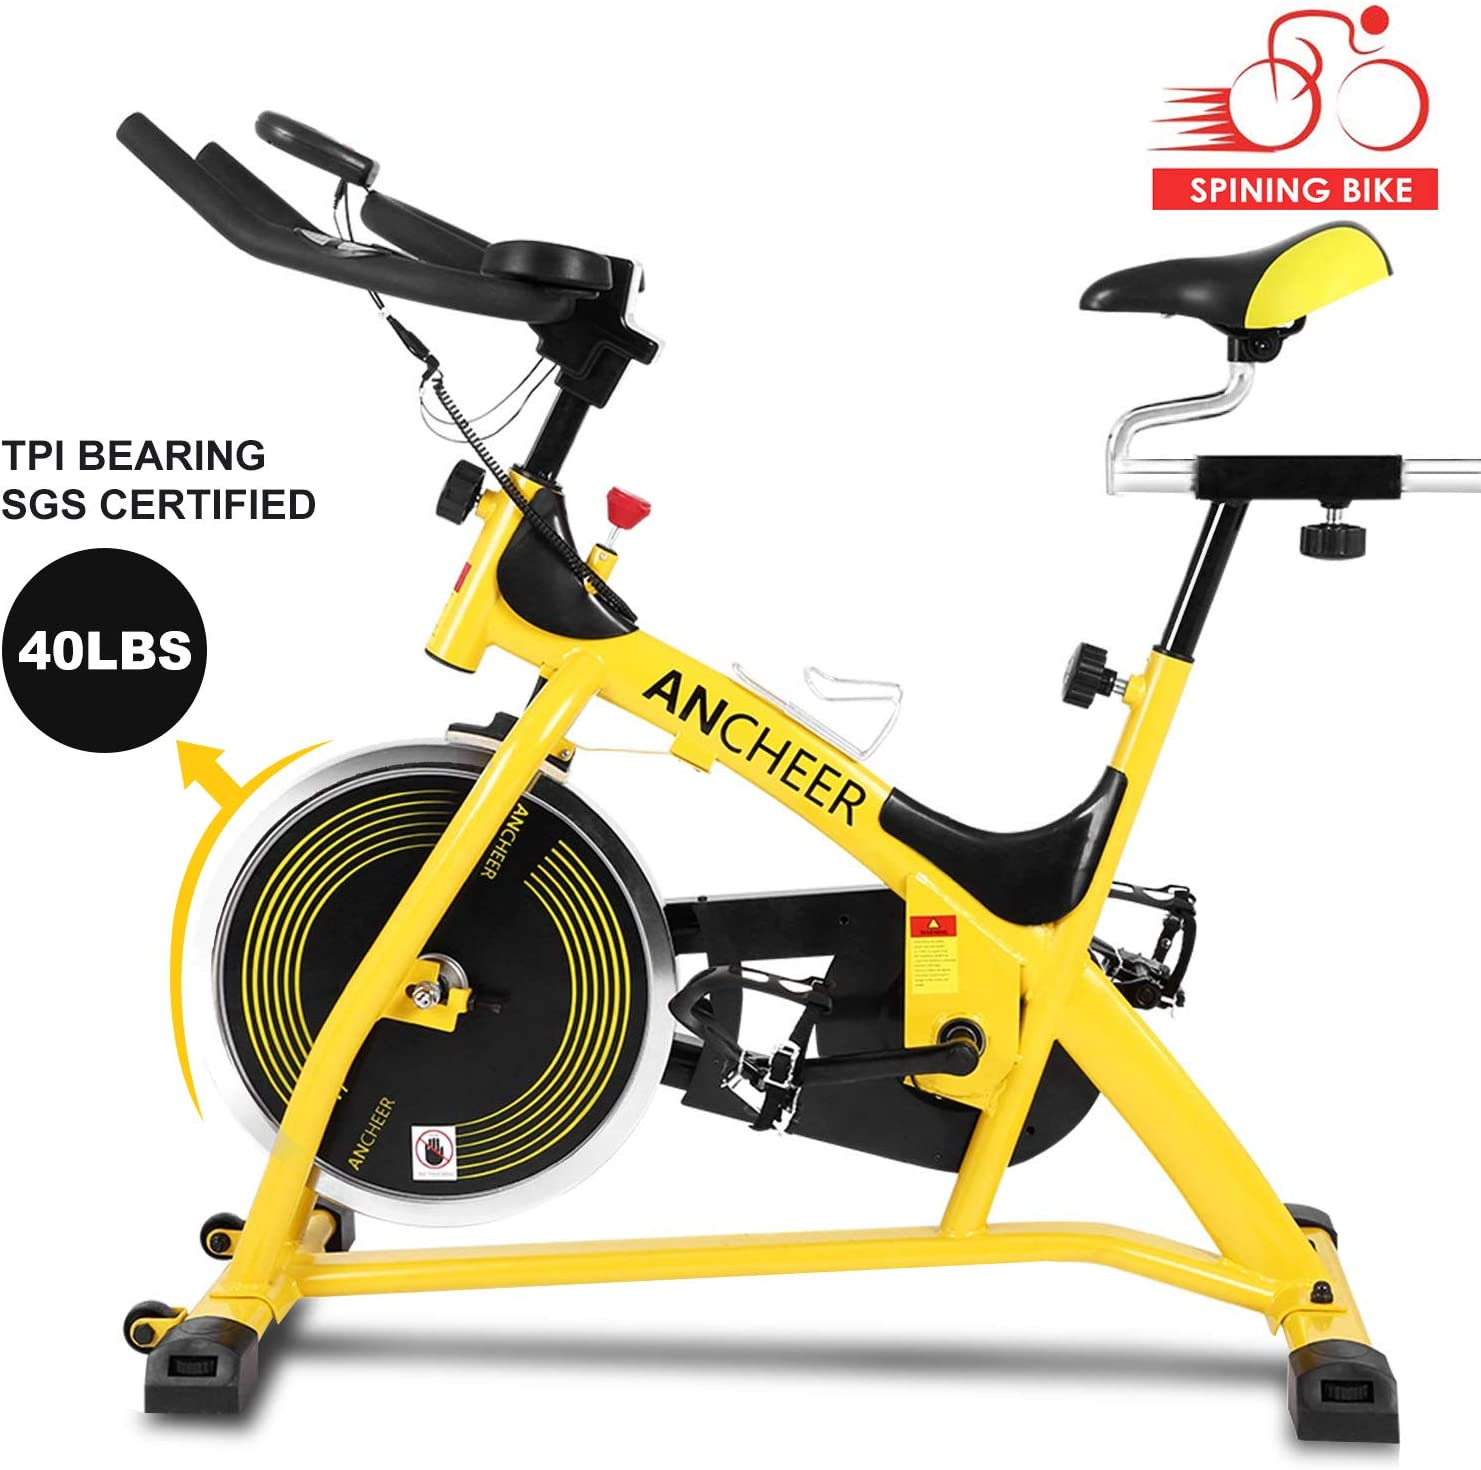 ANCHEER Indoor Cycling Stationary Bike, 40 LBS Flywheel Silent Belt Drive Home Exercise Bike